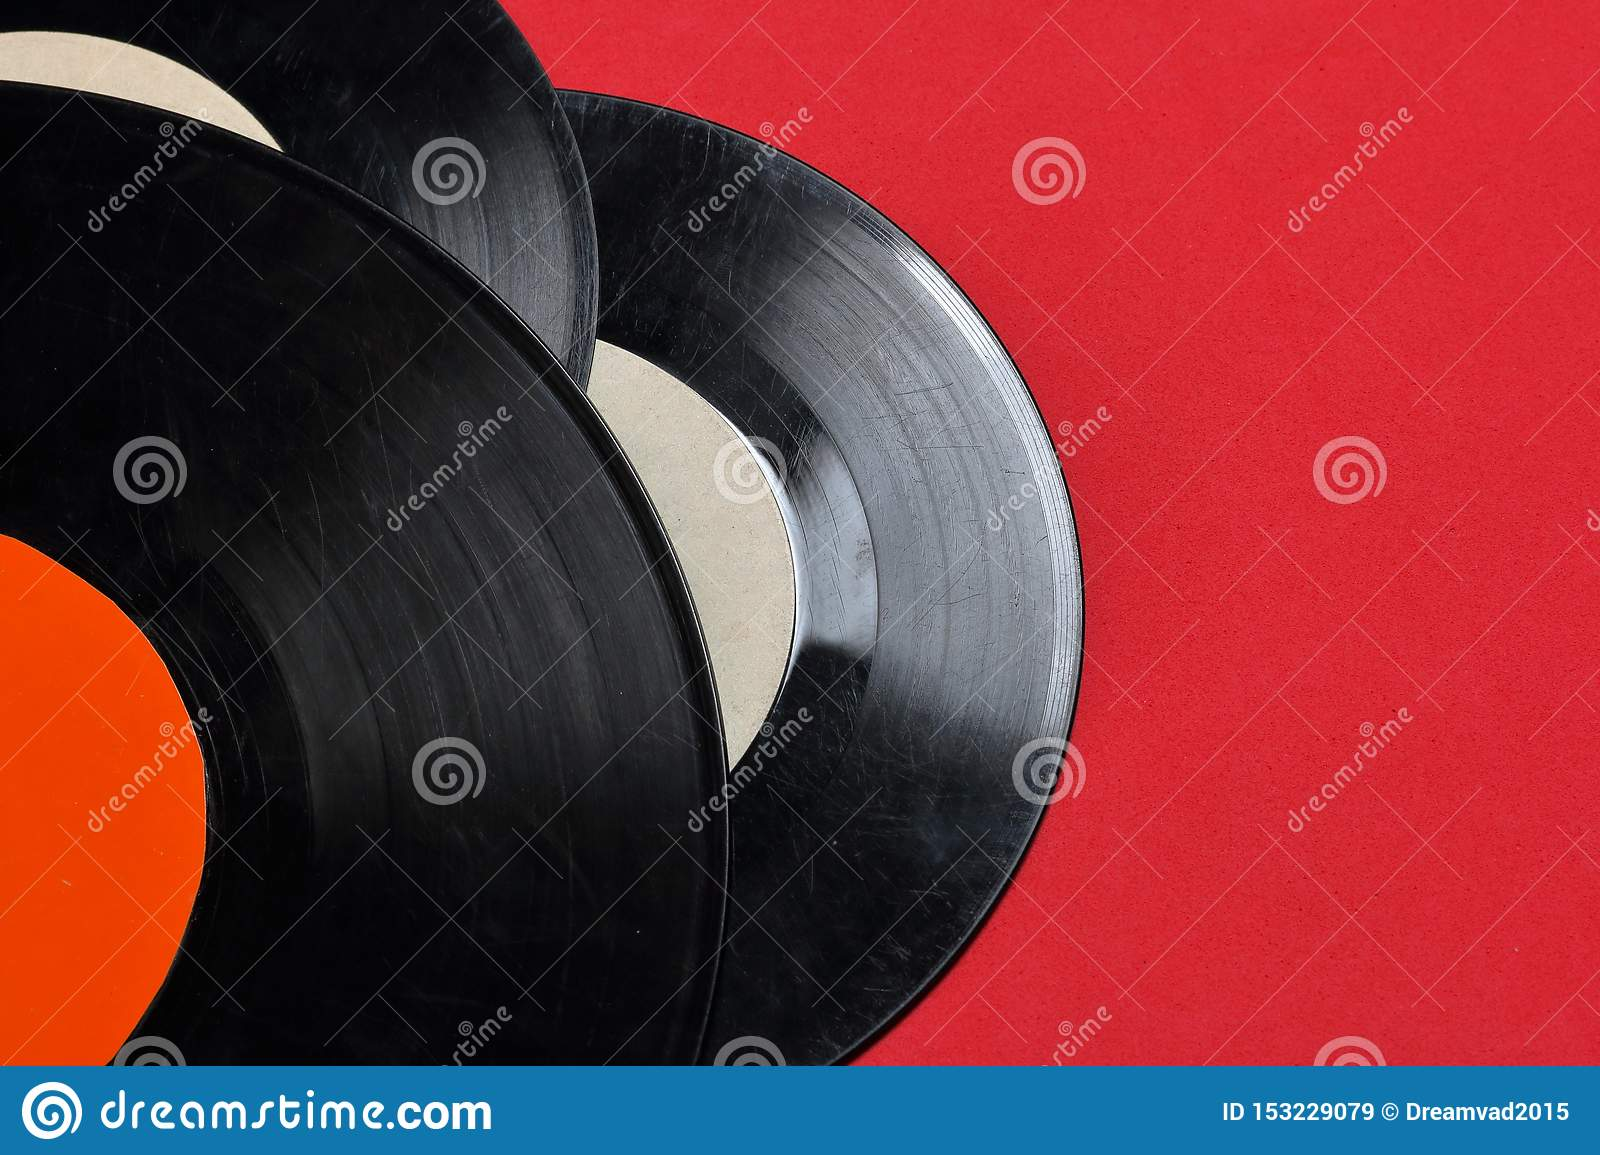 Old vinyl records. Worn and dirty.